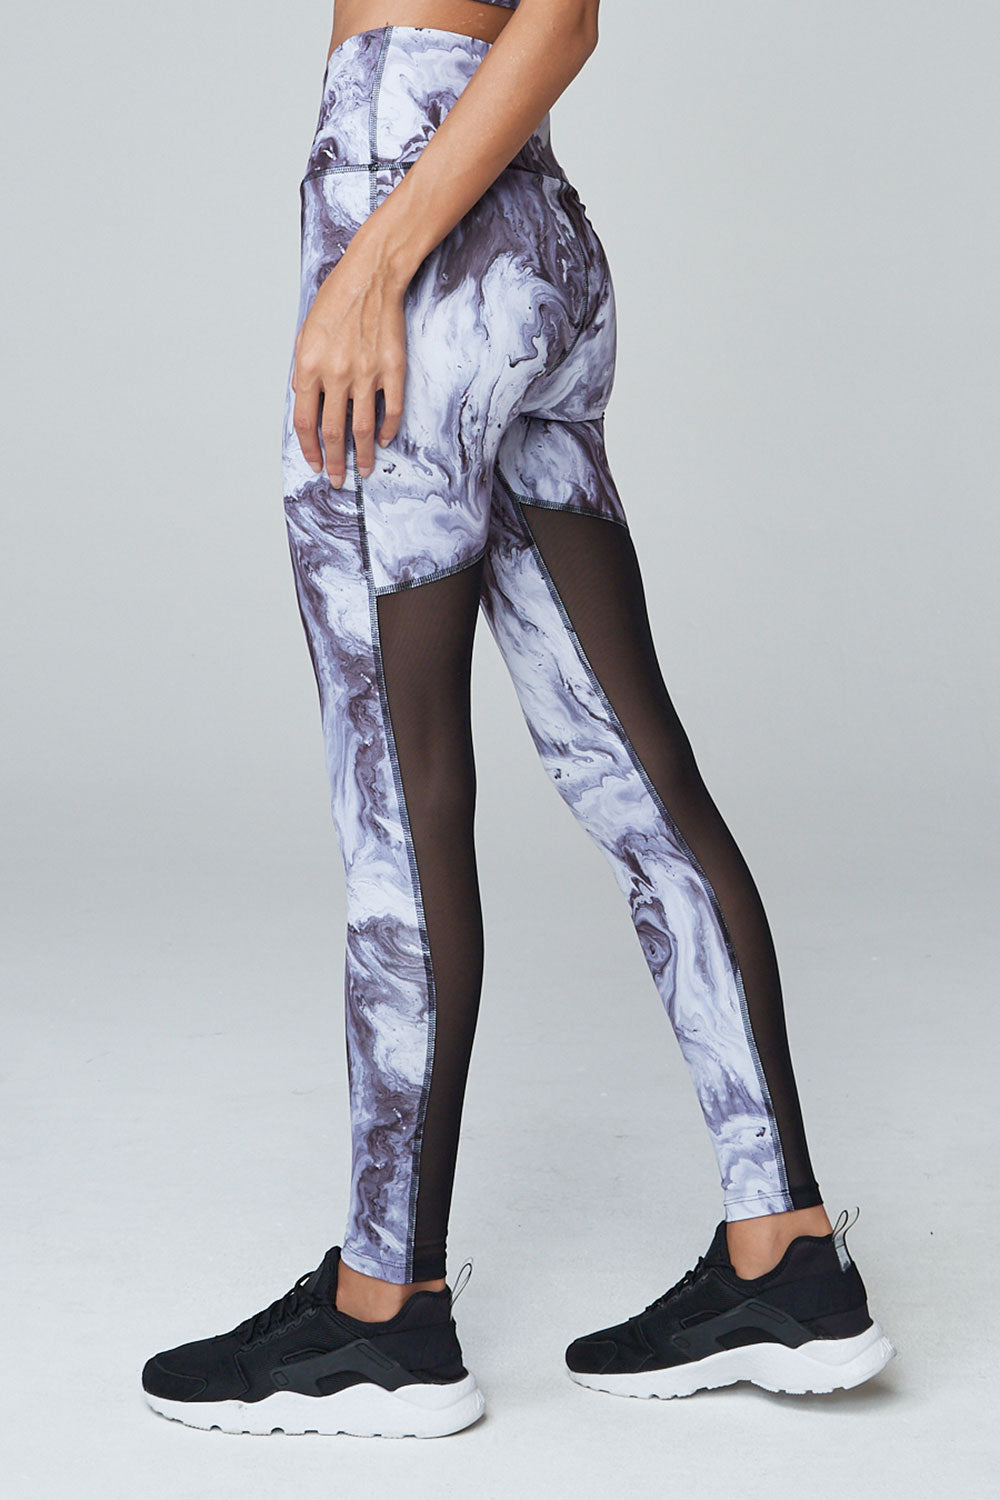 Kingman Tight - Royal Marble Print